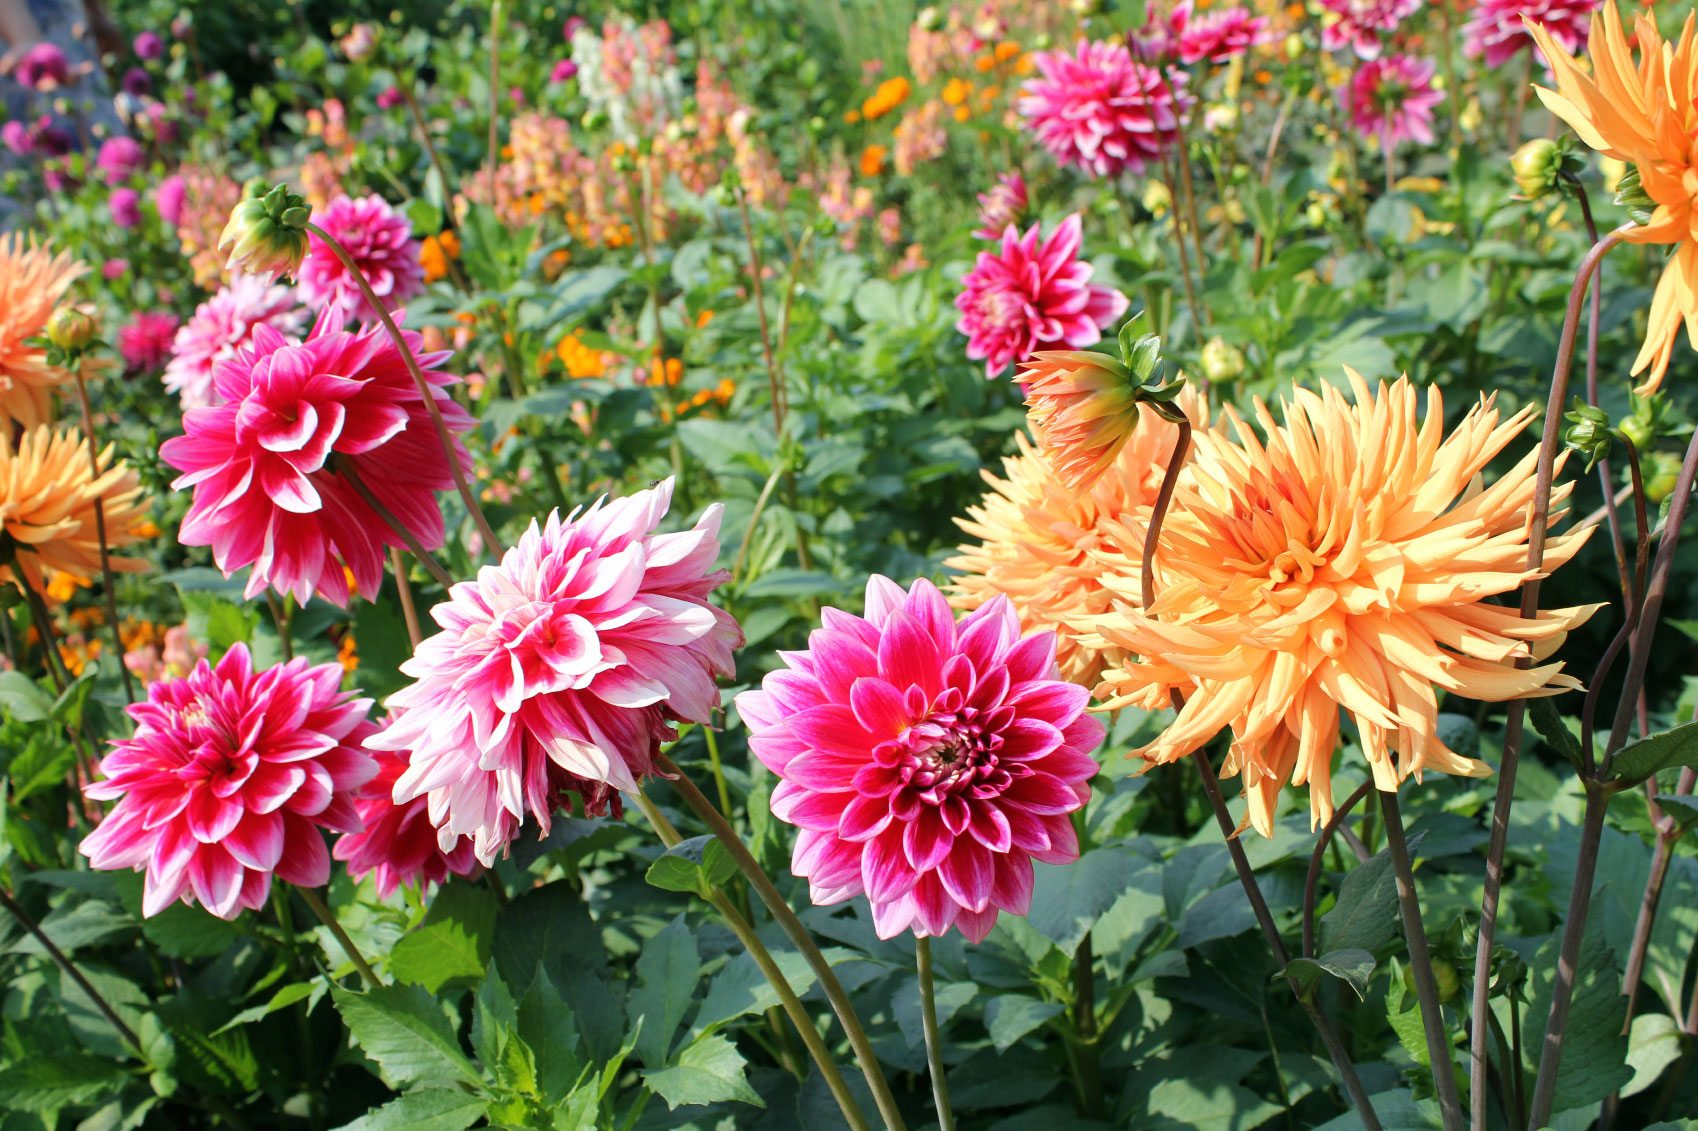 Dahlia Growing Tips Caring For Dahlia Plants In The Garden